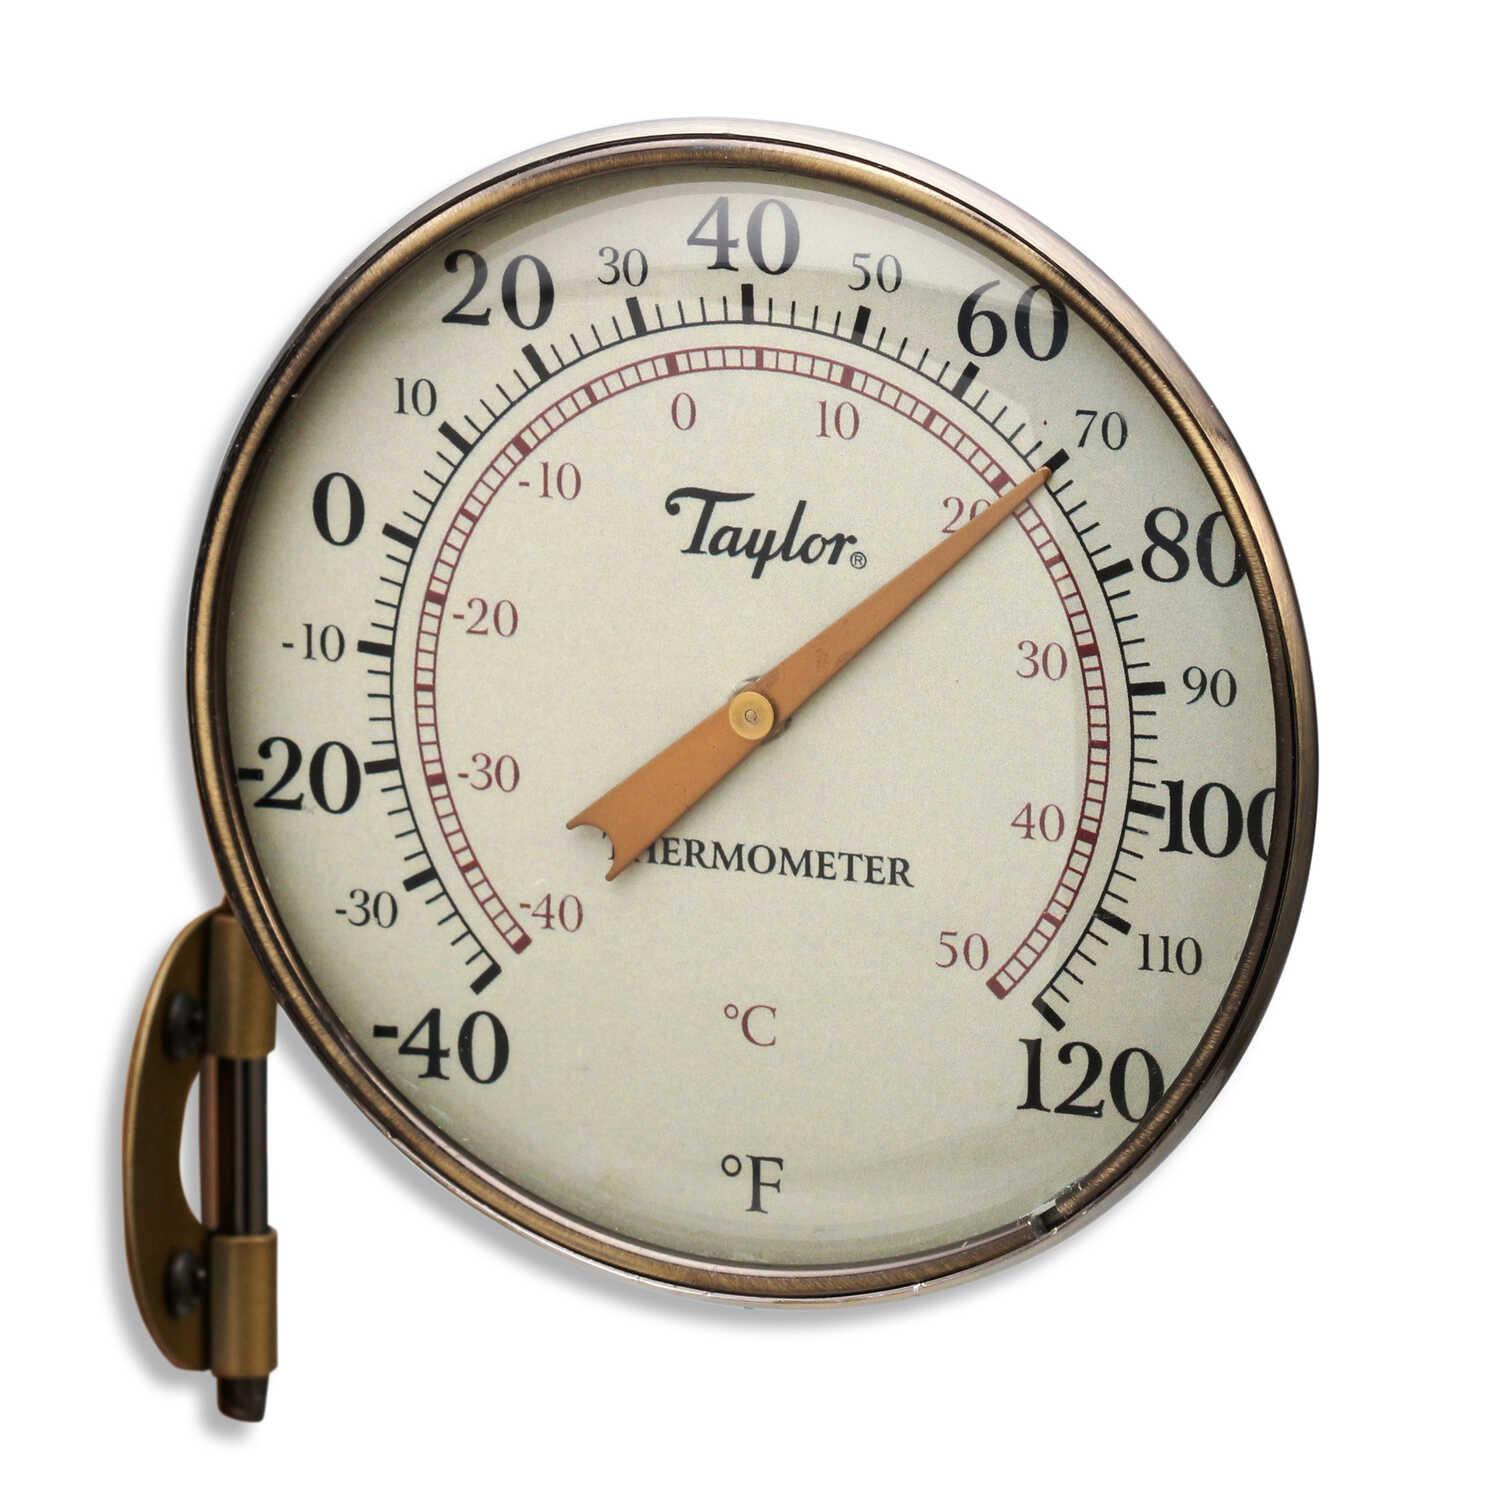 Taylor  Classic  Thermometer  Aluminum  Bronze